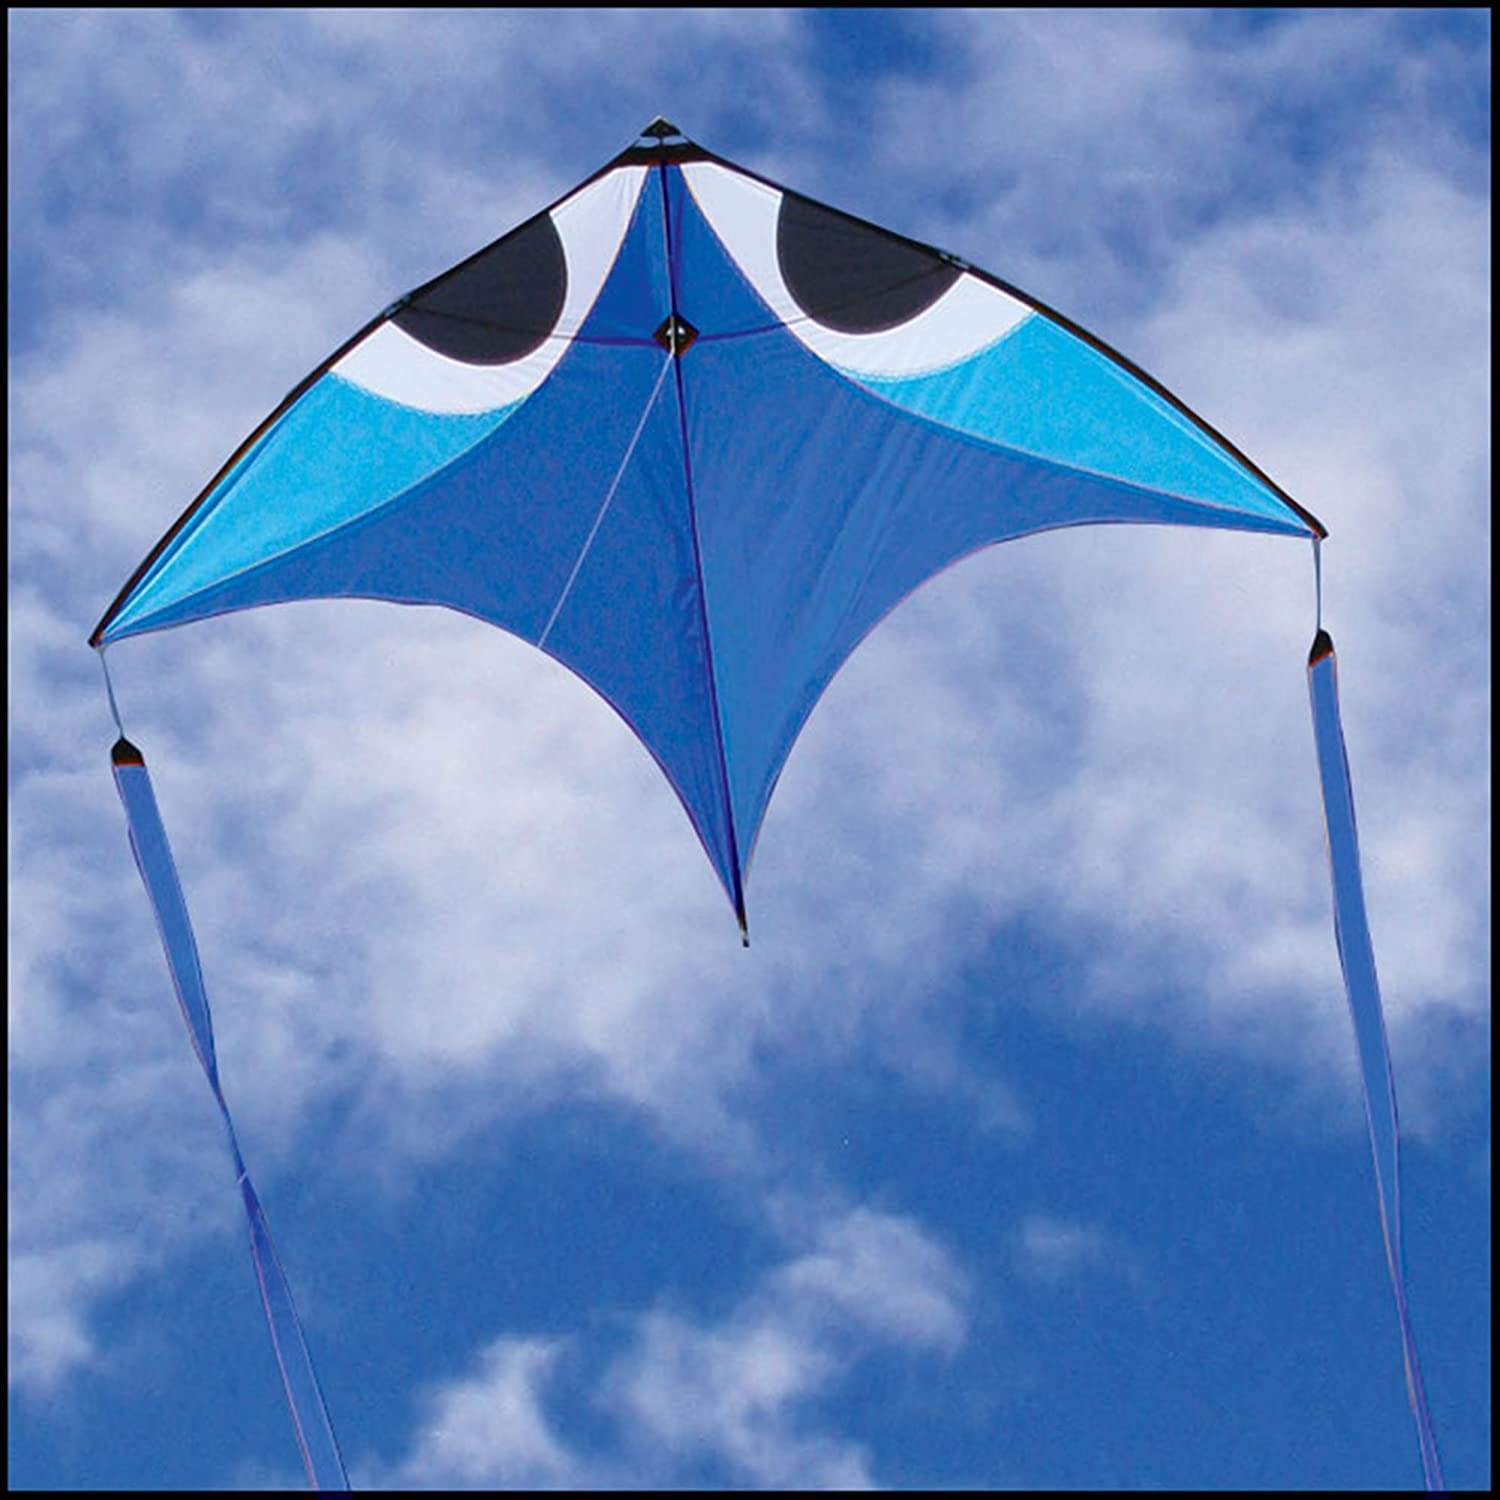 Flying WingsブルーWala glider-kite by Pacific Quest B003D0GRBU